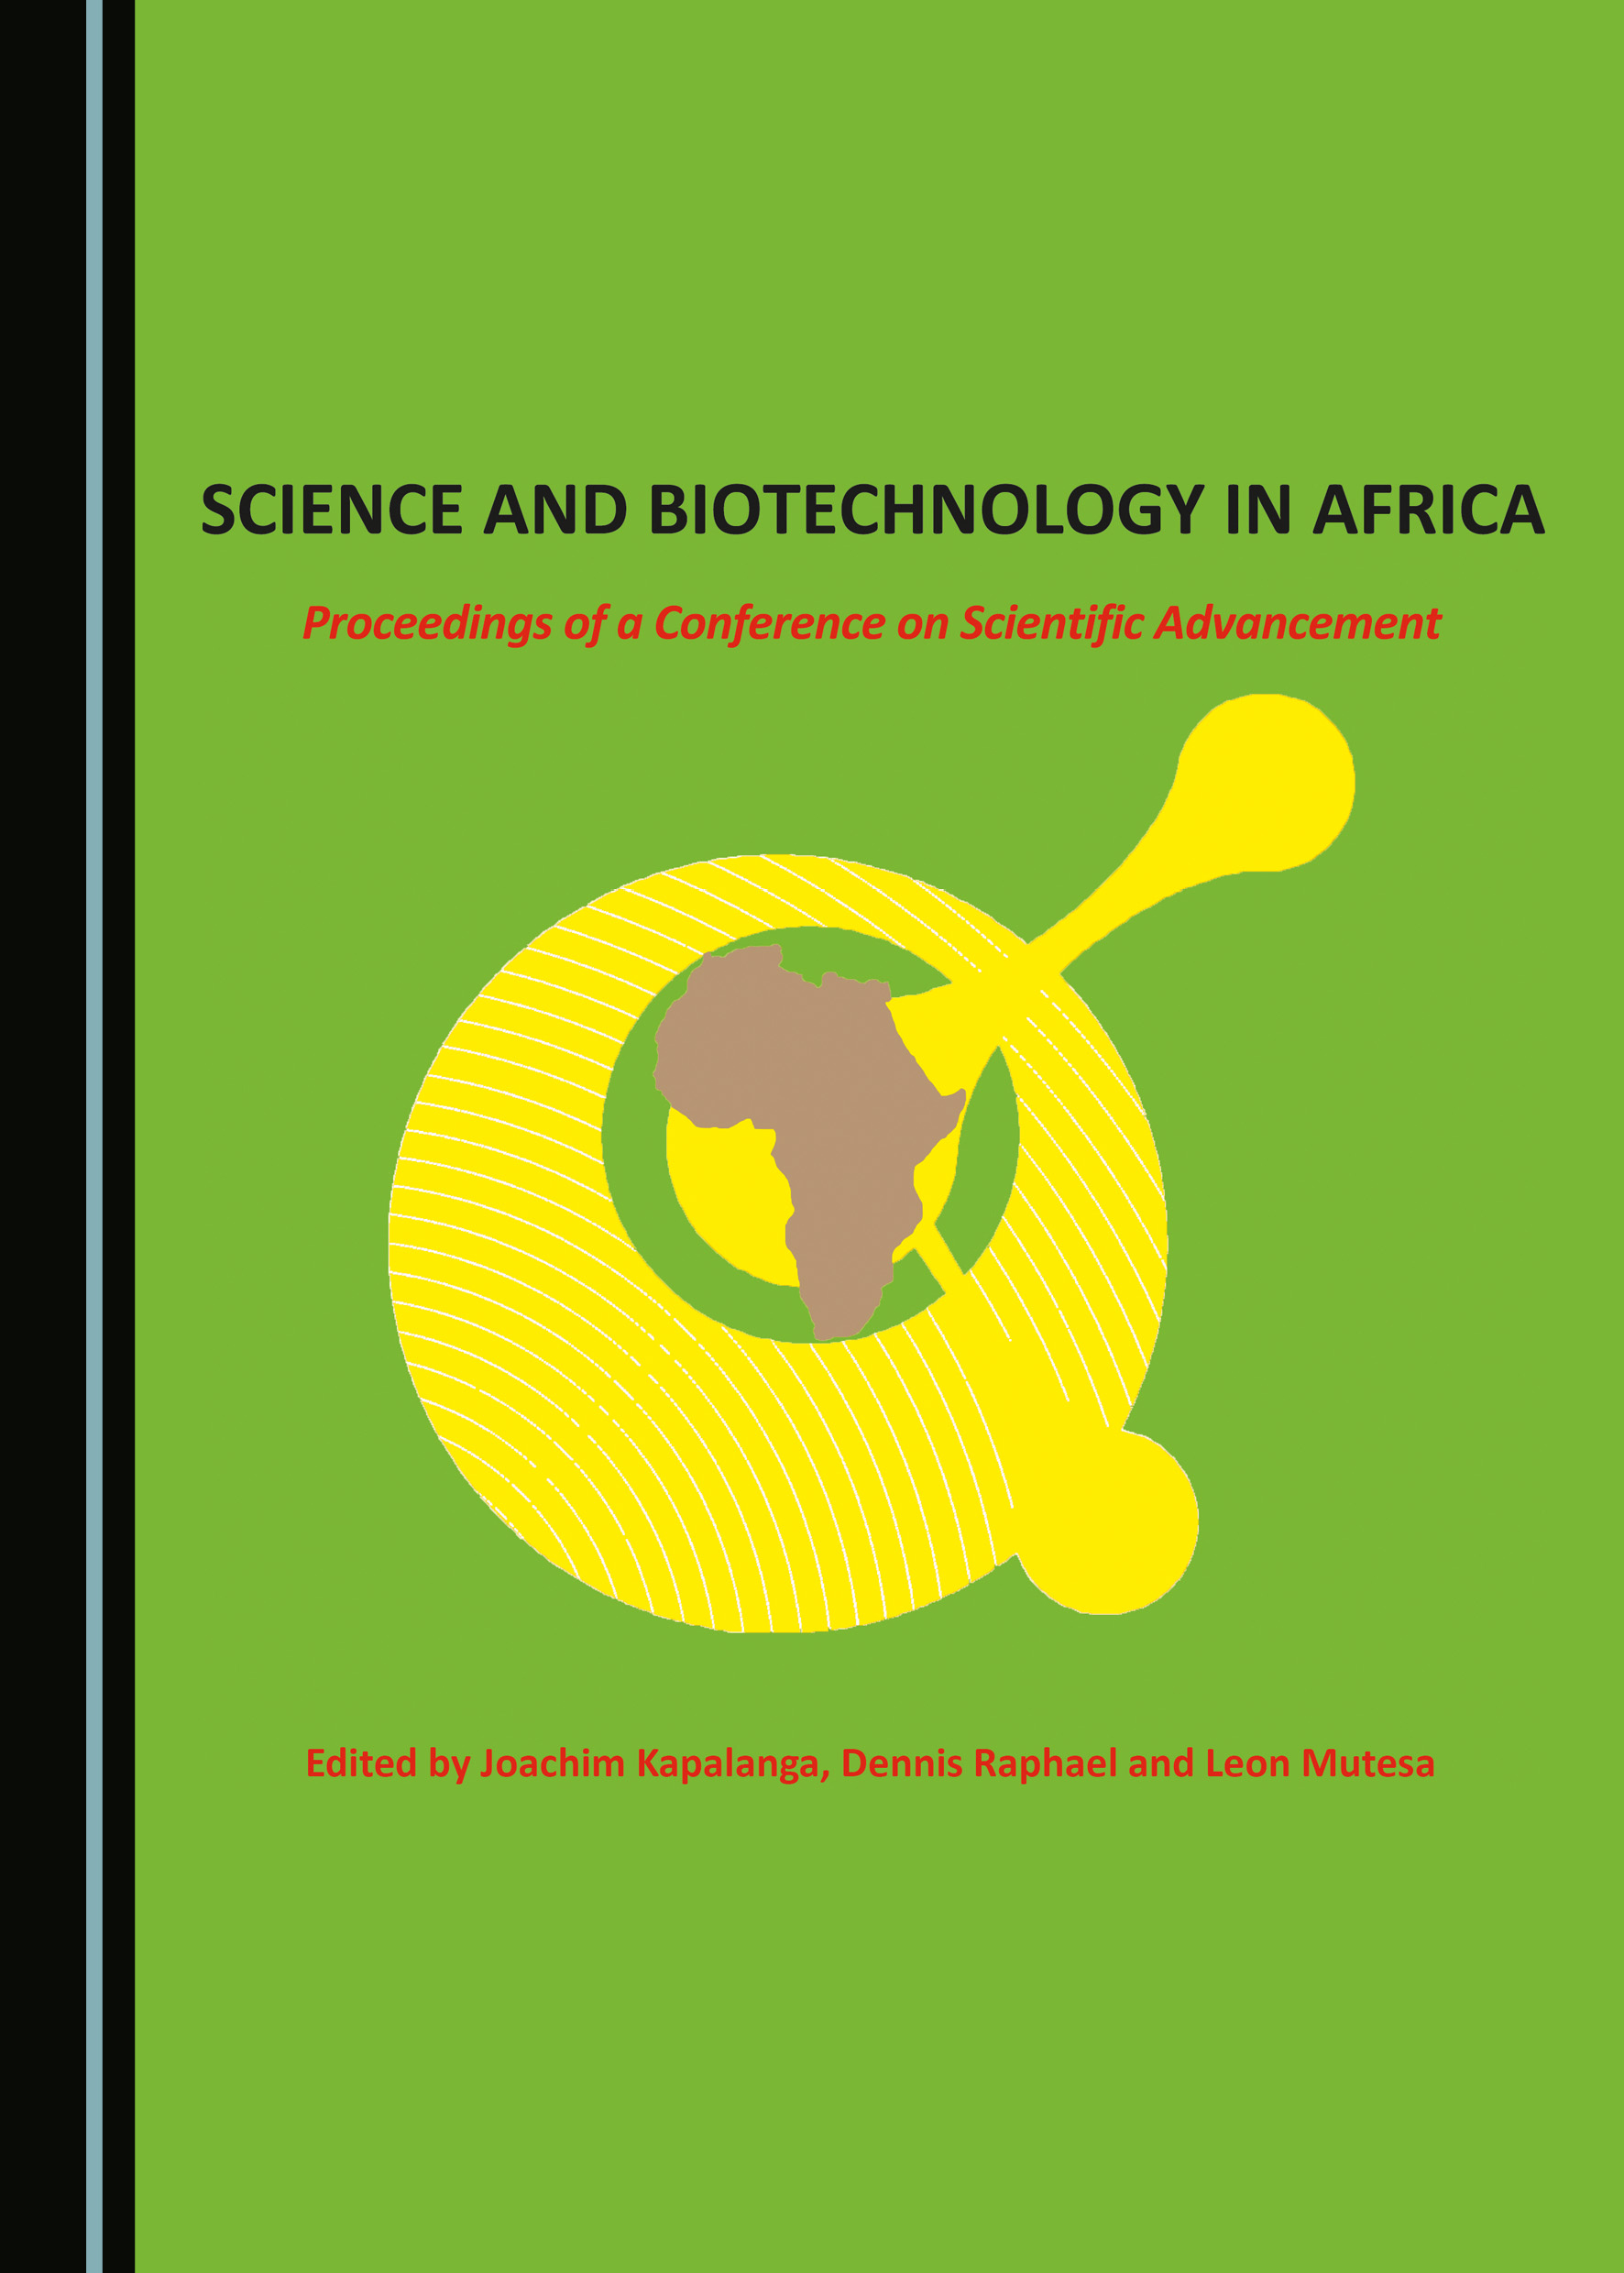 Science and Biotechnology in Africa: Proceedings of a Conference on Scientific Advancement